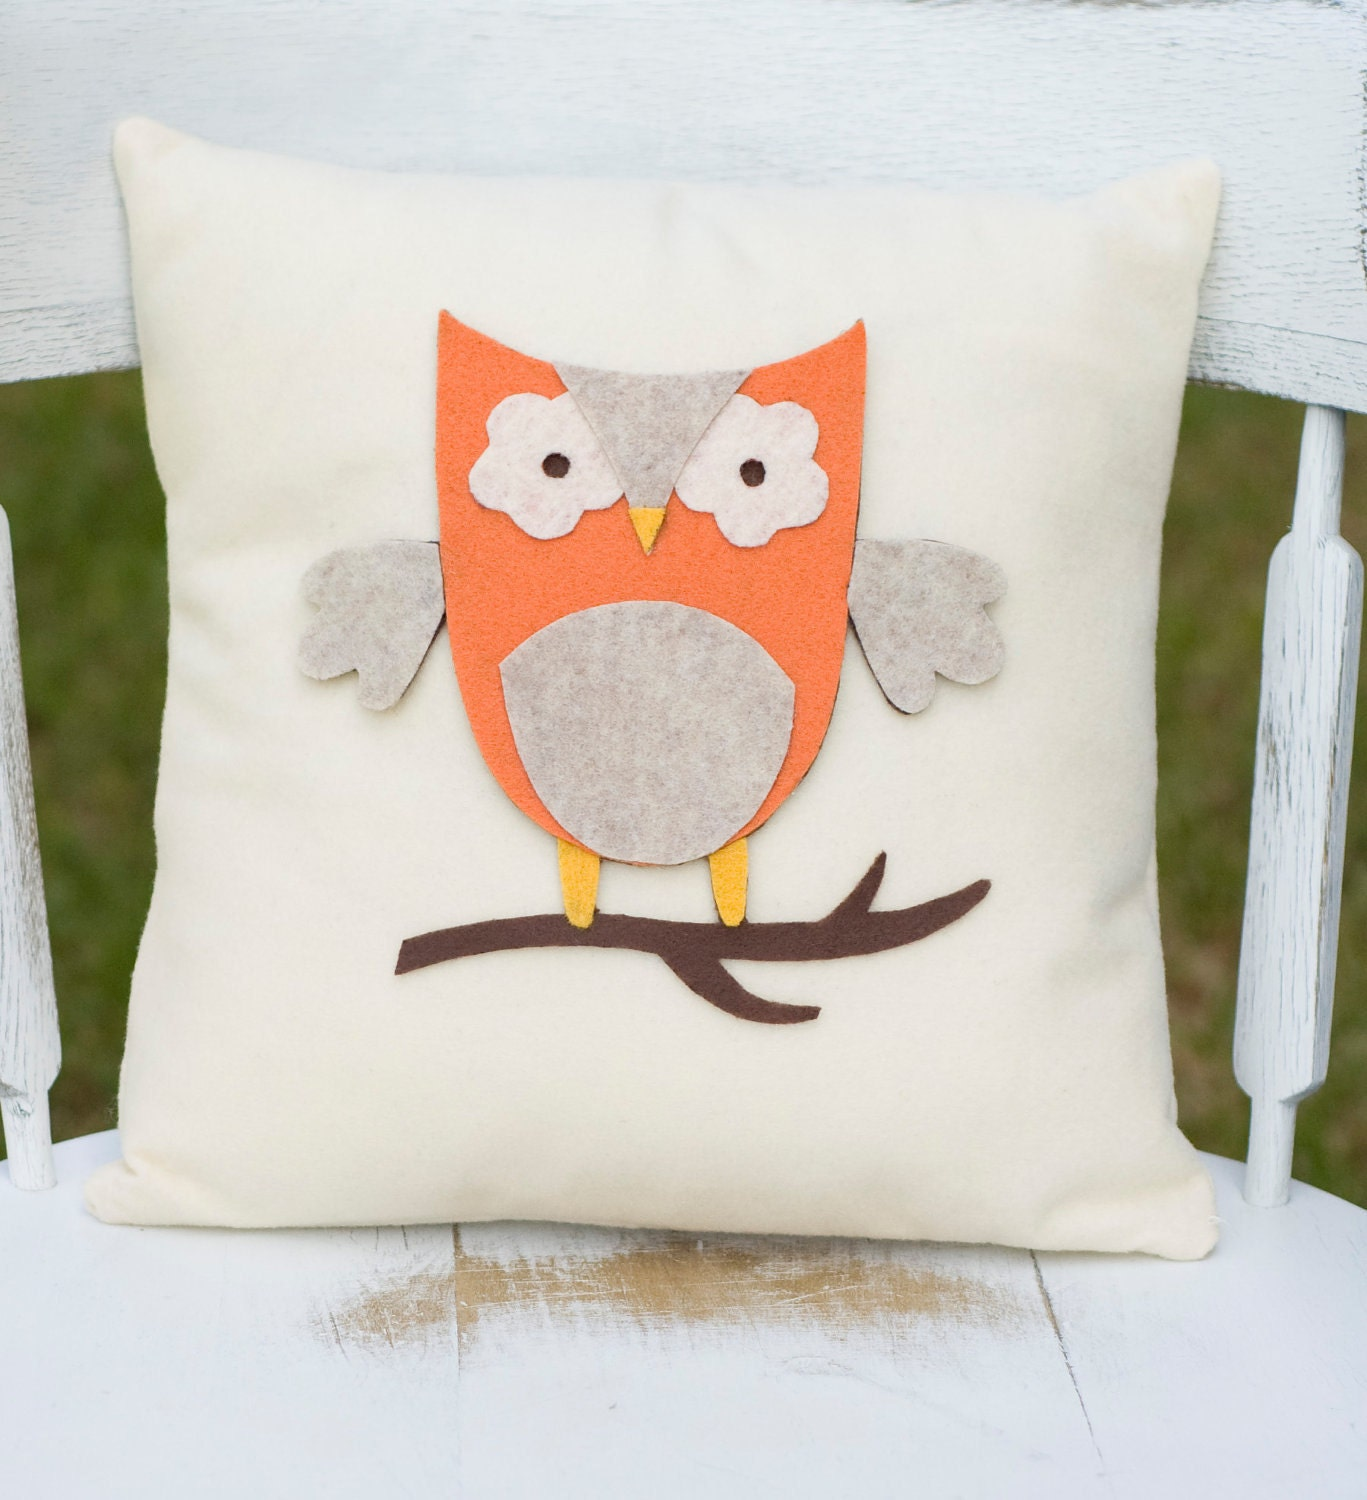 SALE- Hoot- Decorative Felt Owl Burlap Pillow 14X14